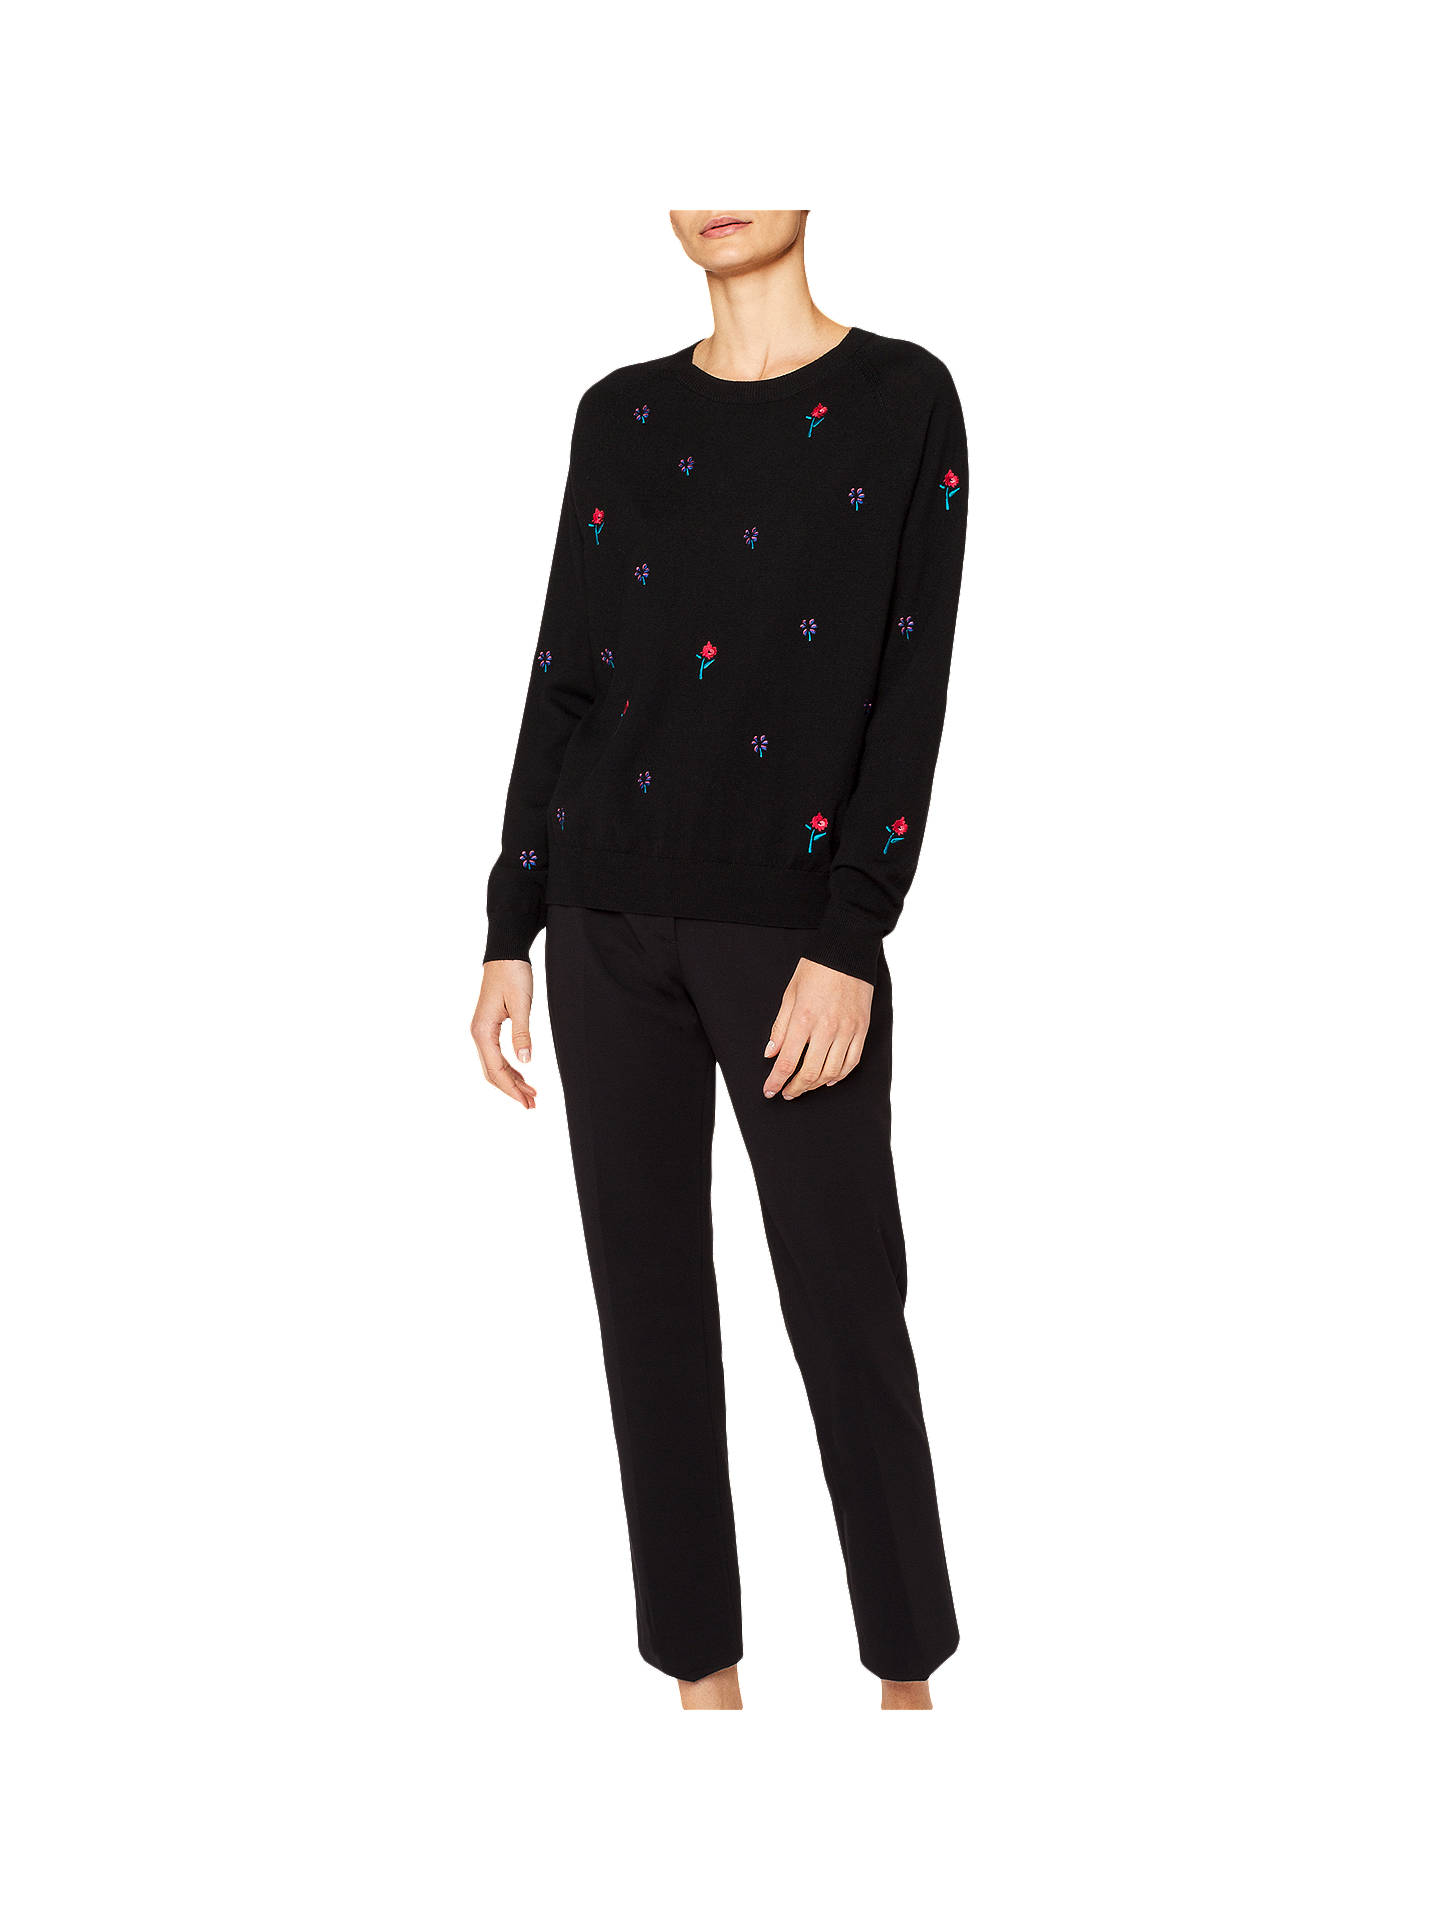 BuyPS Paul Smith Embroidered Knit Jumper, Black, XS Online at johnlewis.com